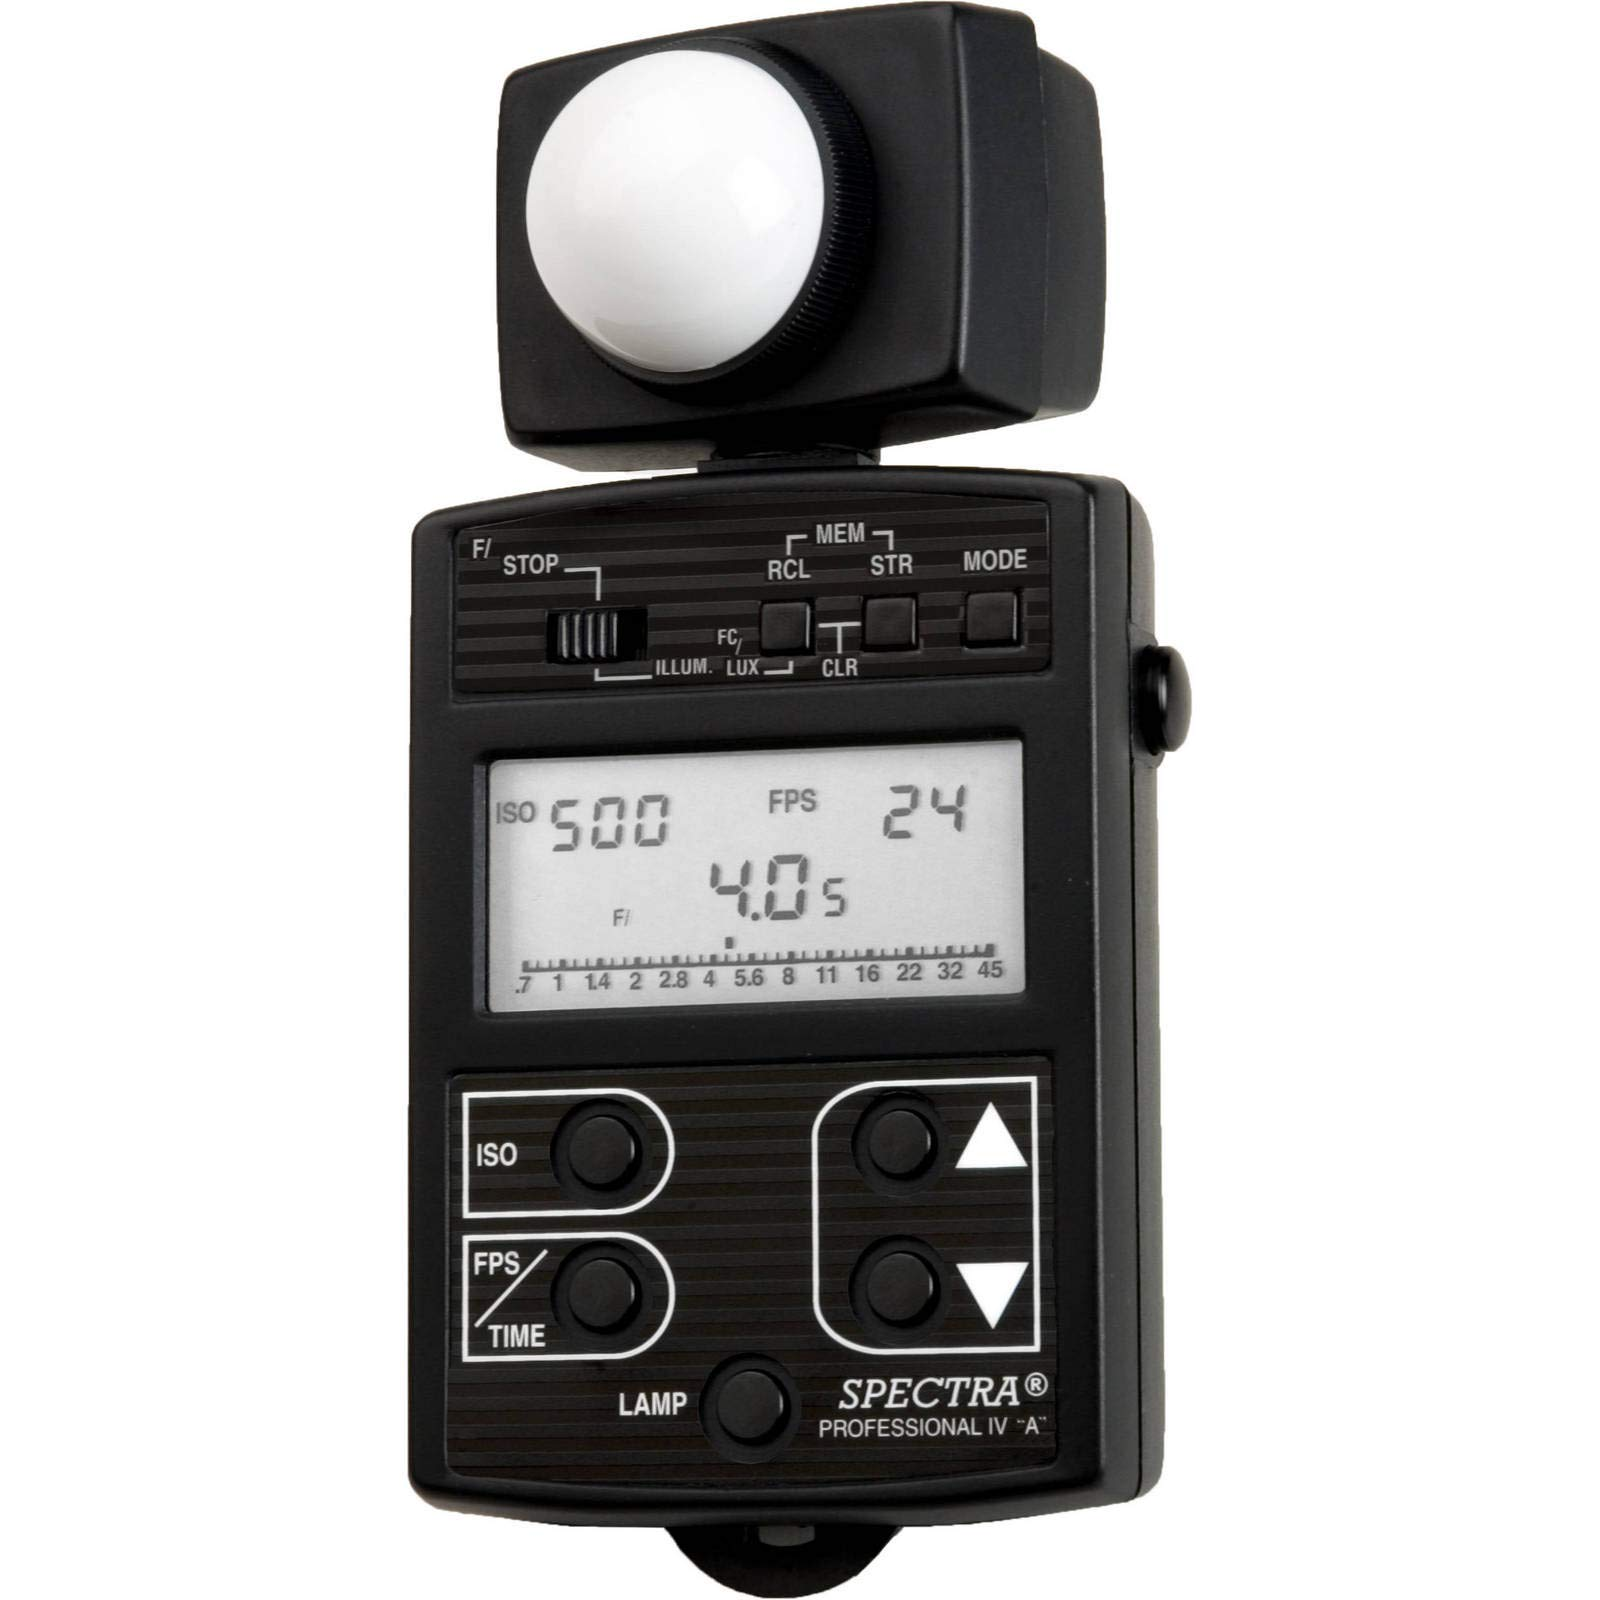 Spectra Cine Professional IV-A Digital Exposure Meter (Black) by Spectra Cine